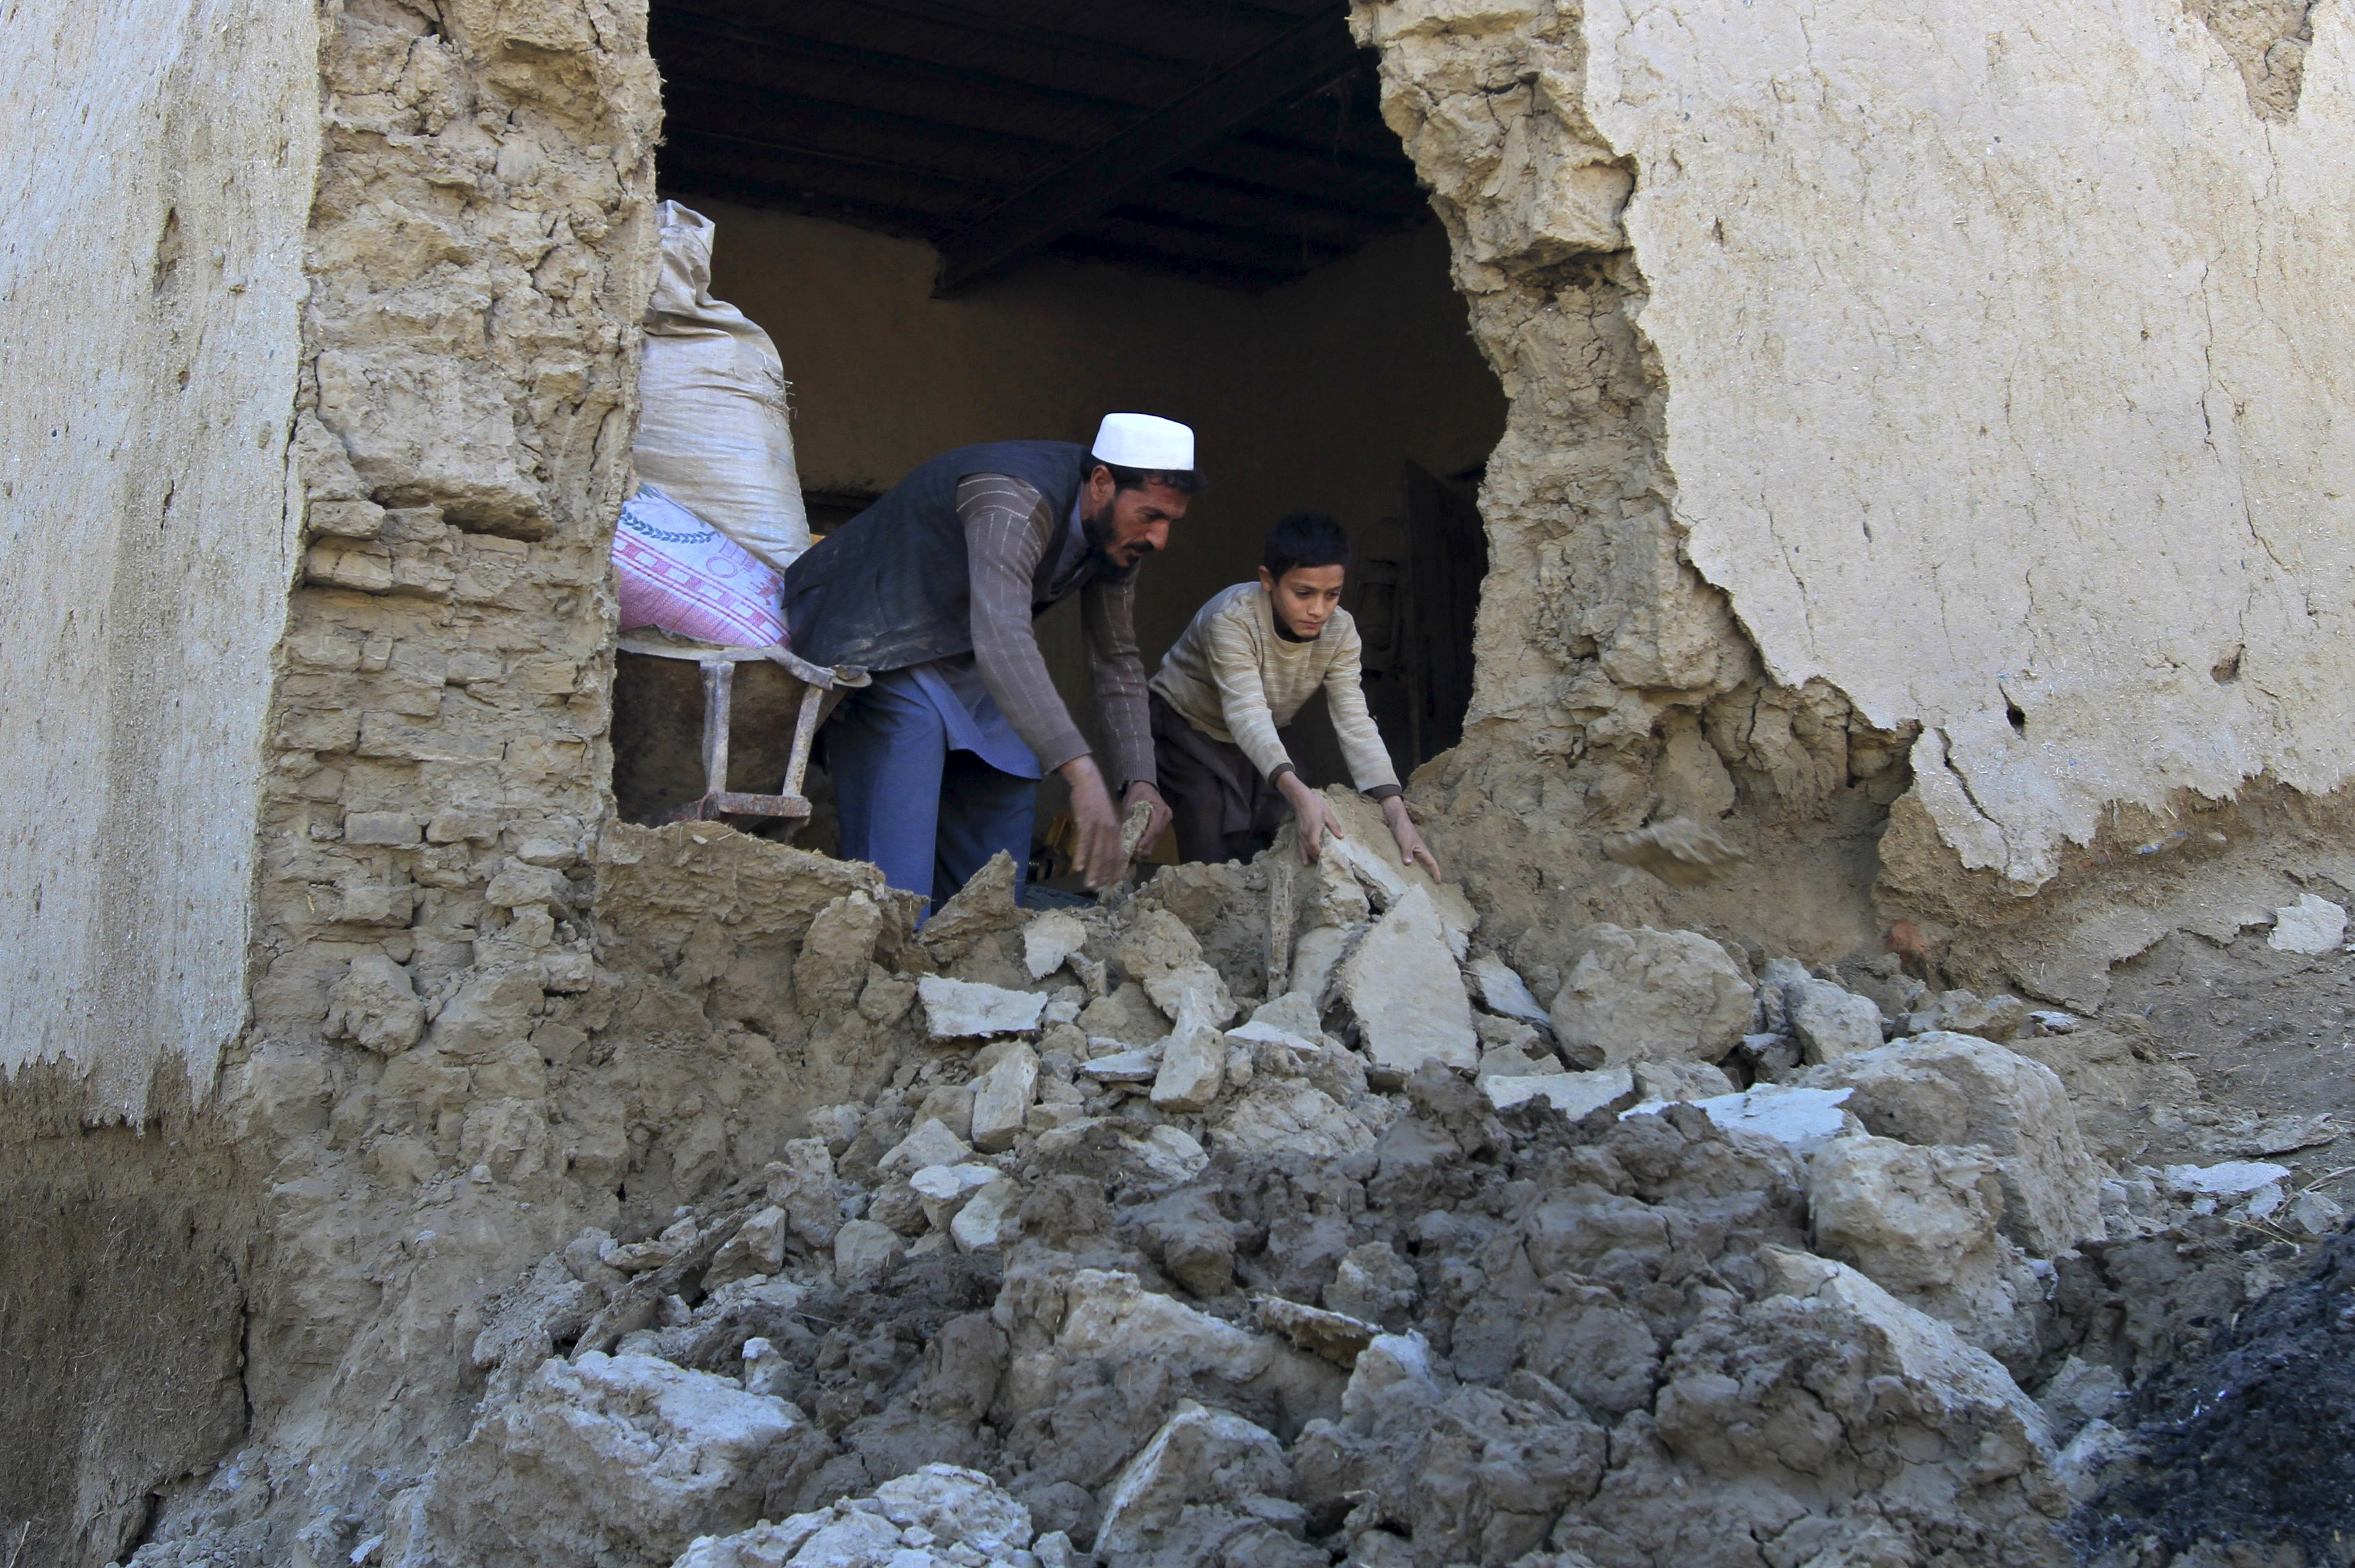 A man and his son clearing rubbles from their house after it was damaged by an earthquake in Behsud district of Nangarhar Province, Afghanistan October 27, 2015. Rescuers on Tuesday rushed to deliver relief aid to victims of a massive earthquake that hit northern Afghanistan and Pakistan. Photo: Reuters